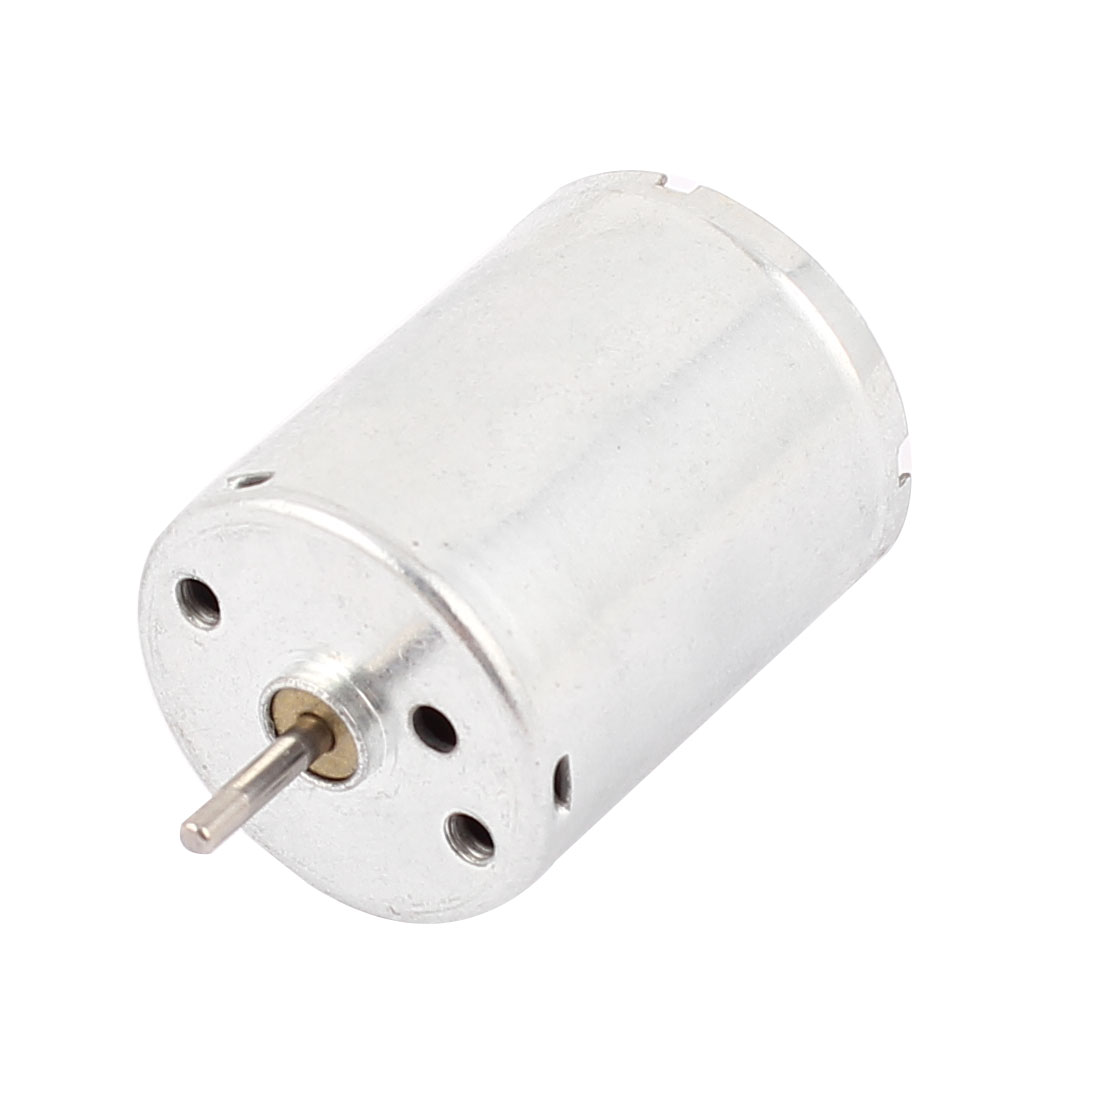 DC 6V 10000RPM Round 2mm Shaft Dia High Torque Mini Micro Vibration Motor